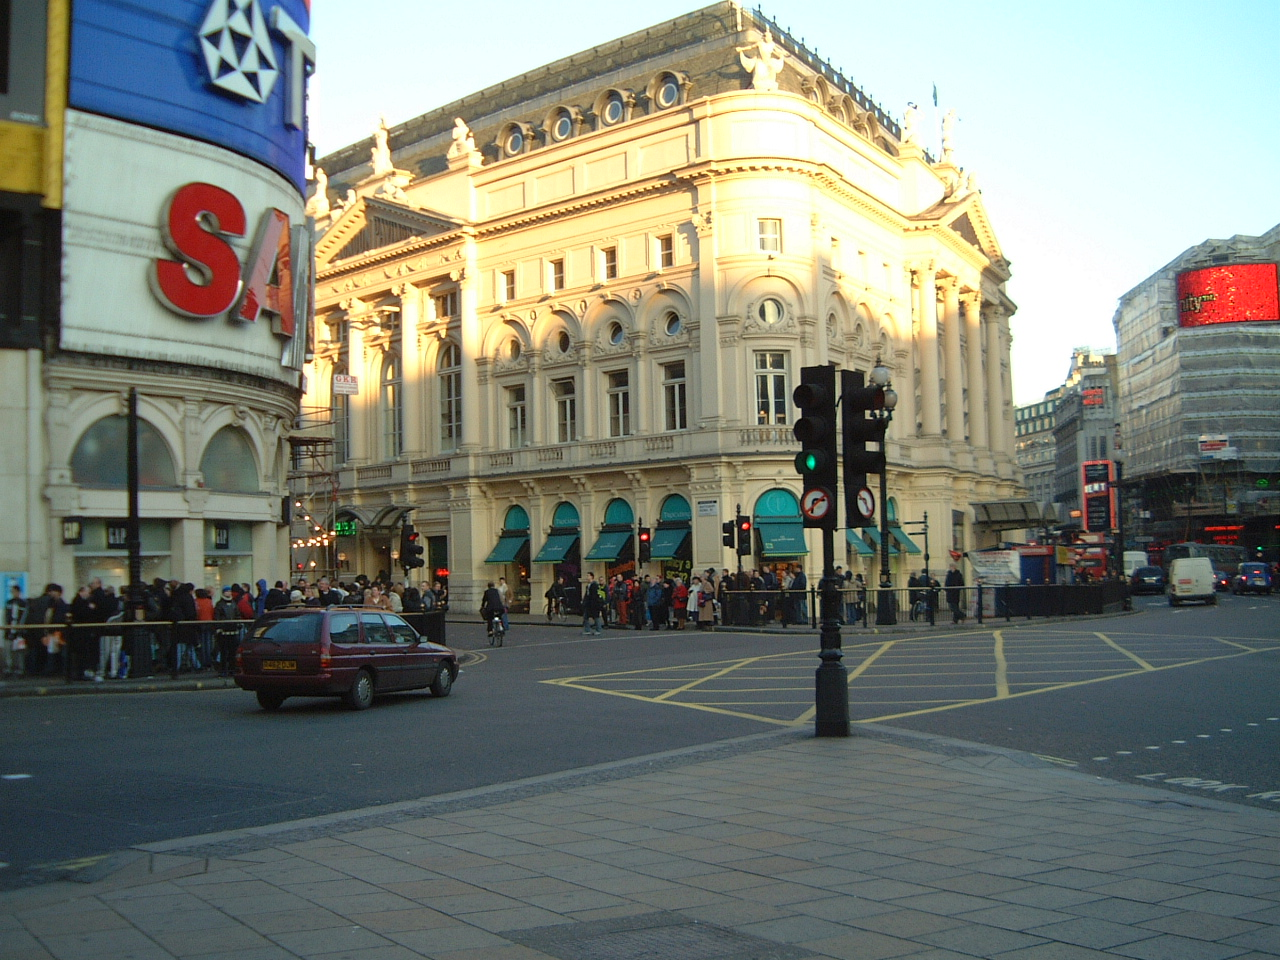 maartent london city piccaddilly circus traffic cars buildings